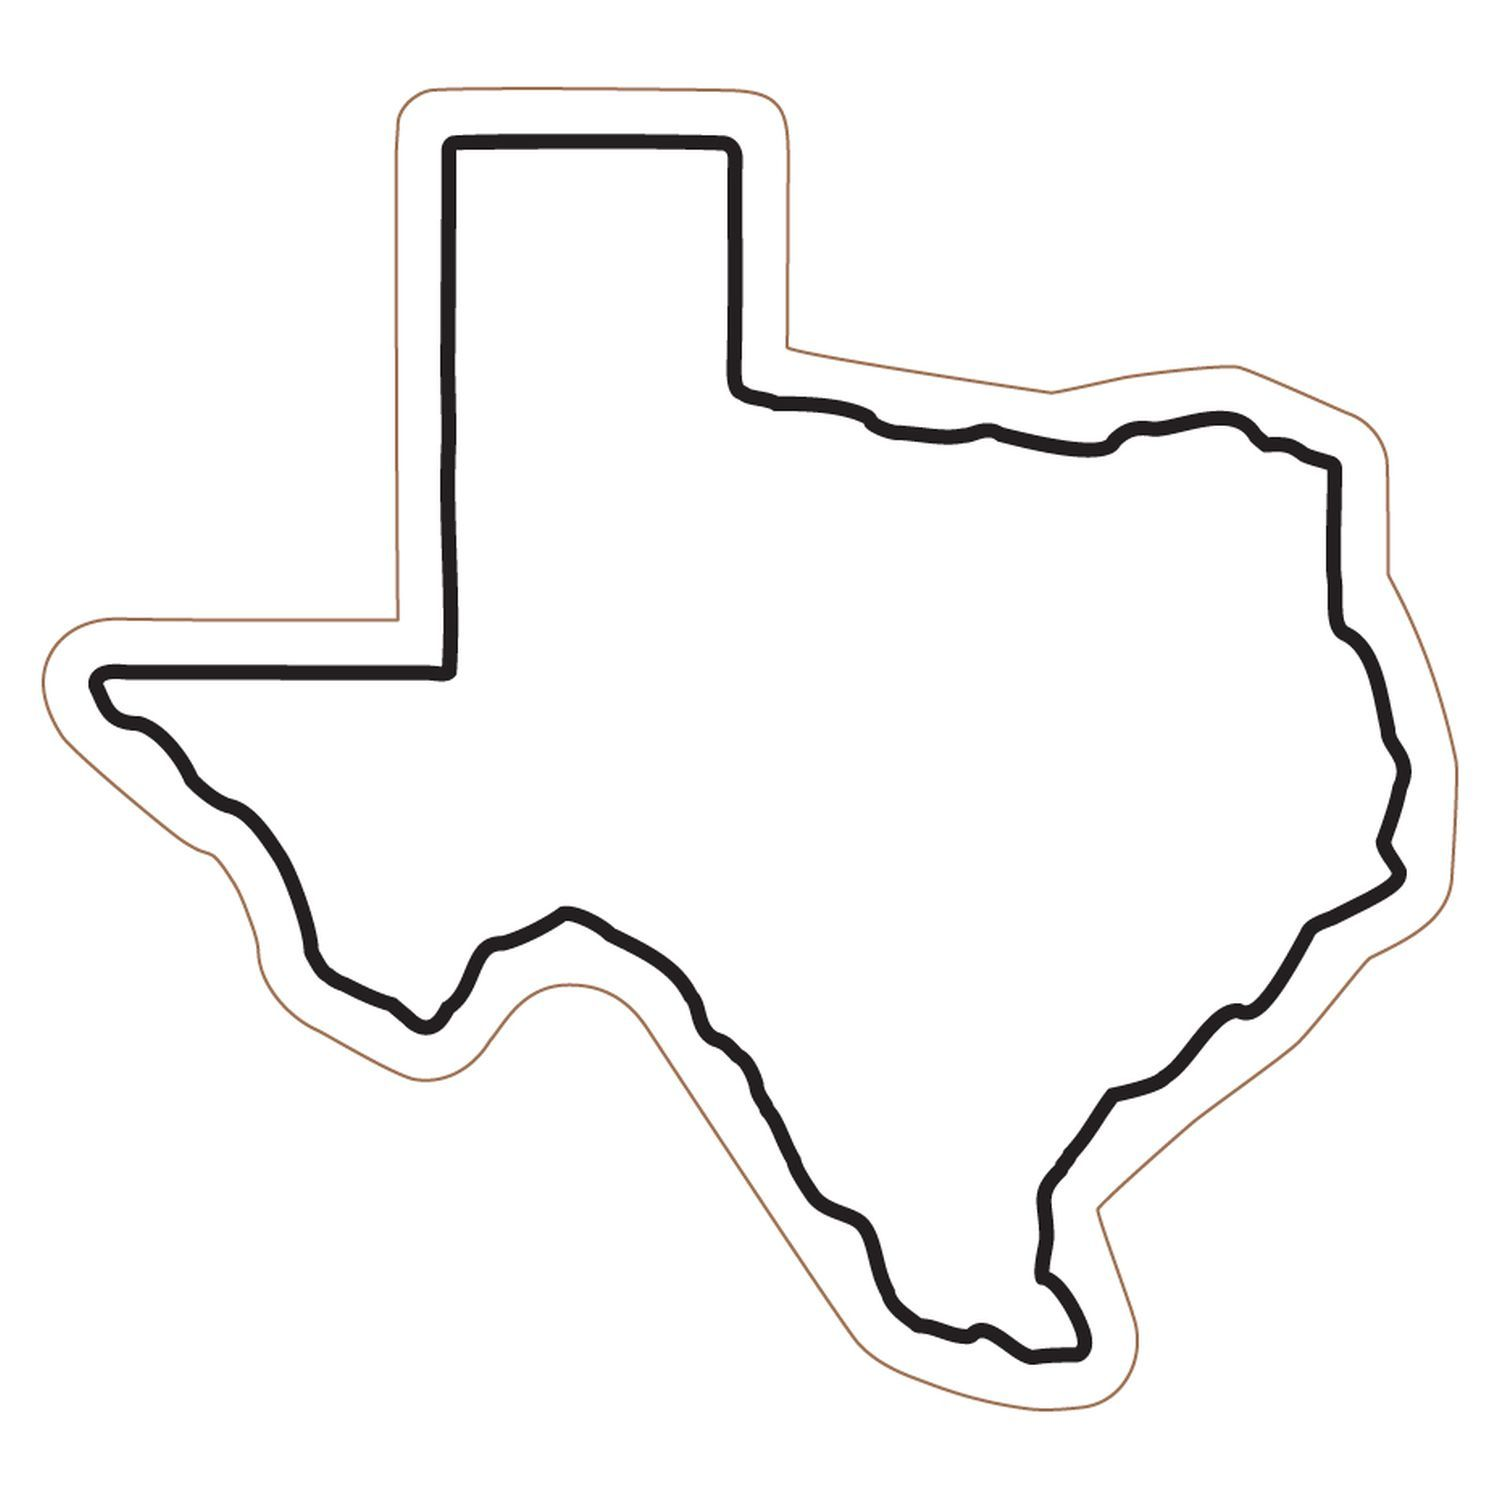 Photos of texas map clip art texas state shape outline.